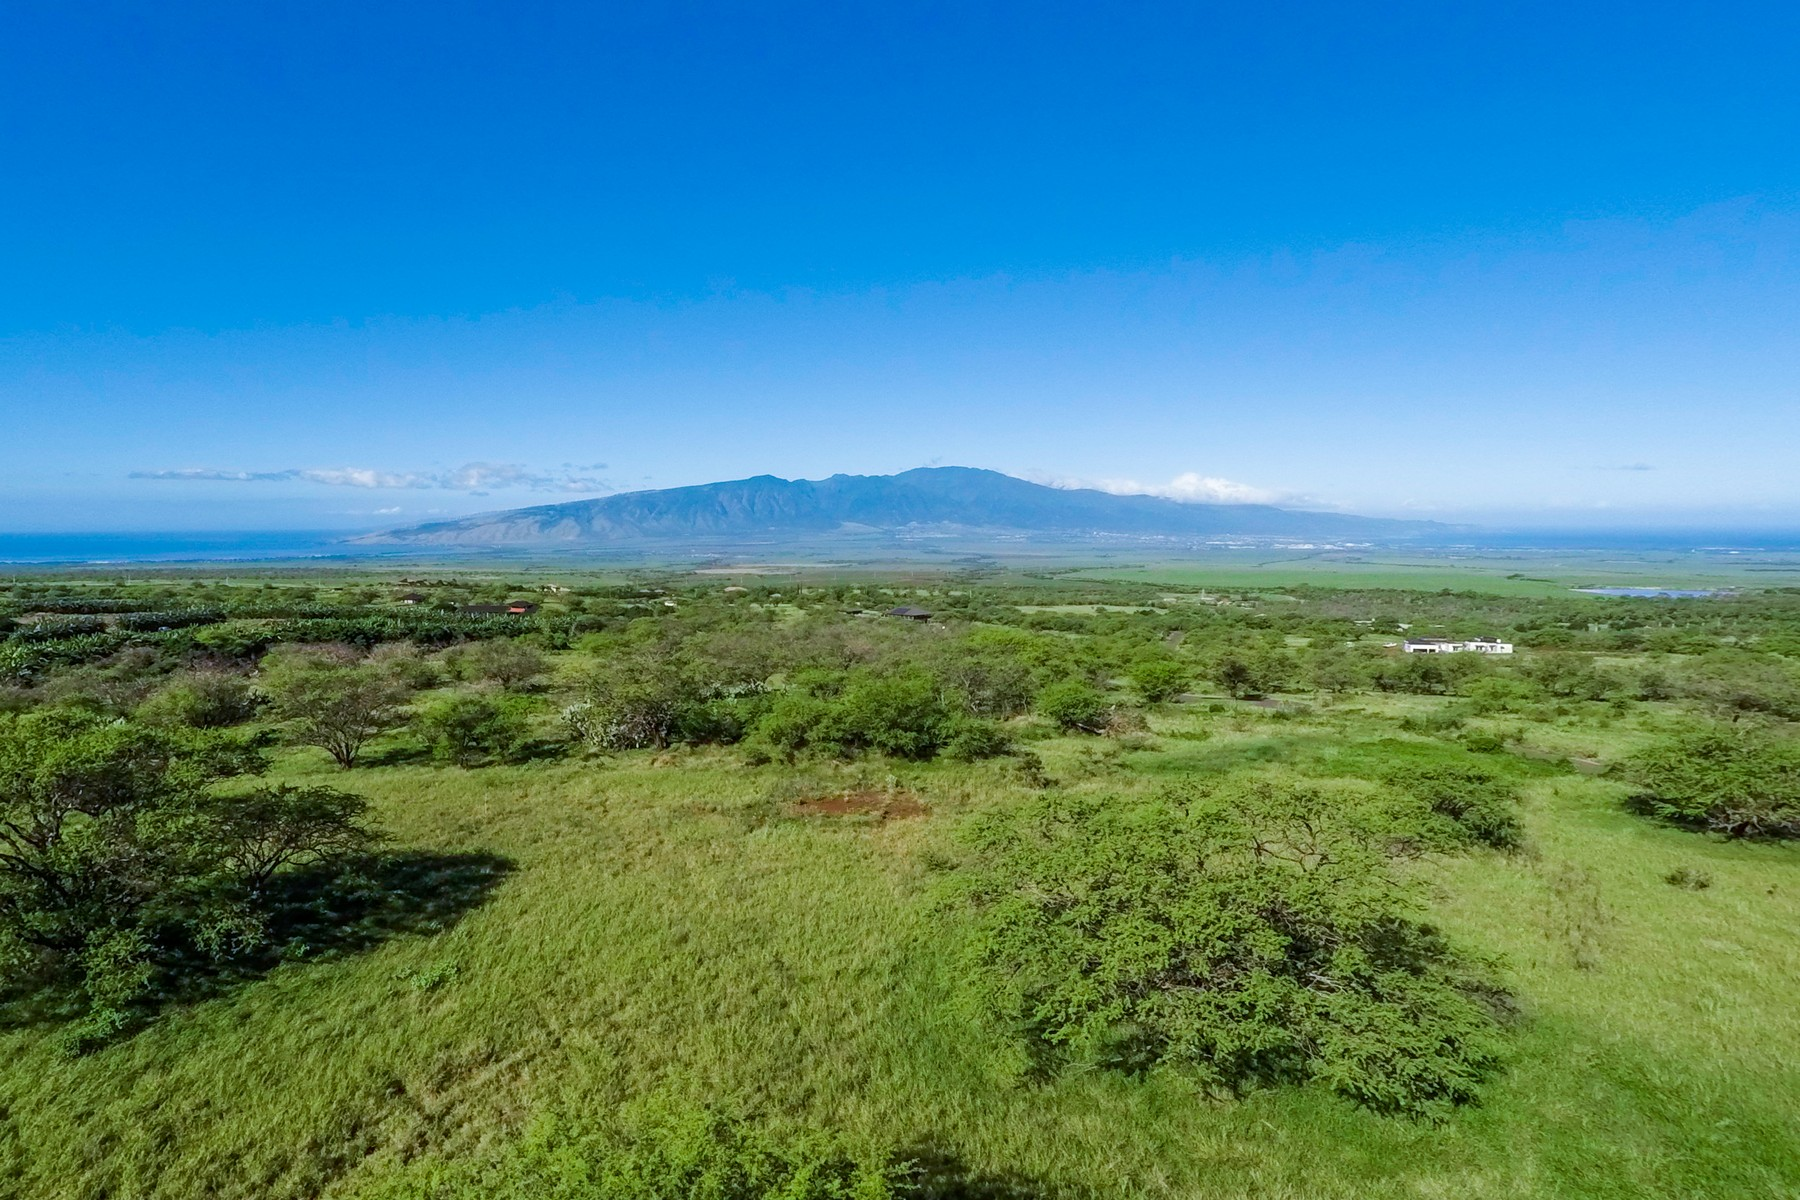 Terreno por un Venta en 5.77 Acres In Maui's Premiere Omaopio Ridge Subdivision 160 Ikena Kai Place, Lot D Kula, Hawaii, 96790 Estados Unidos